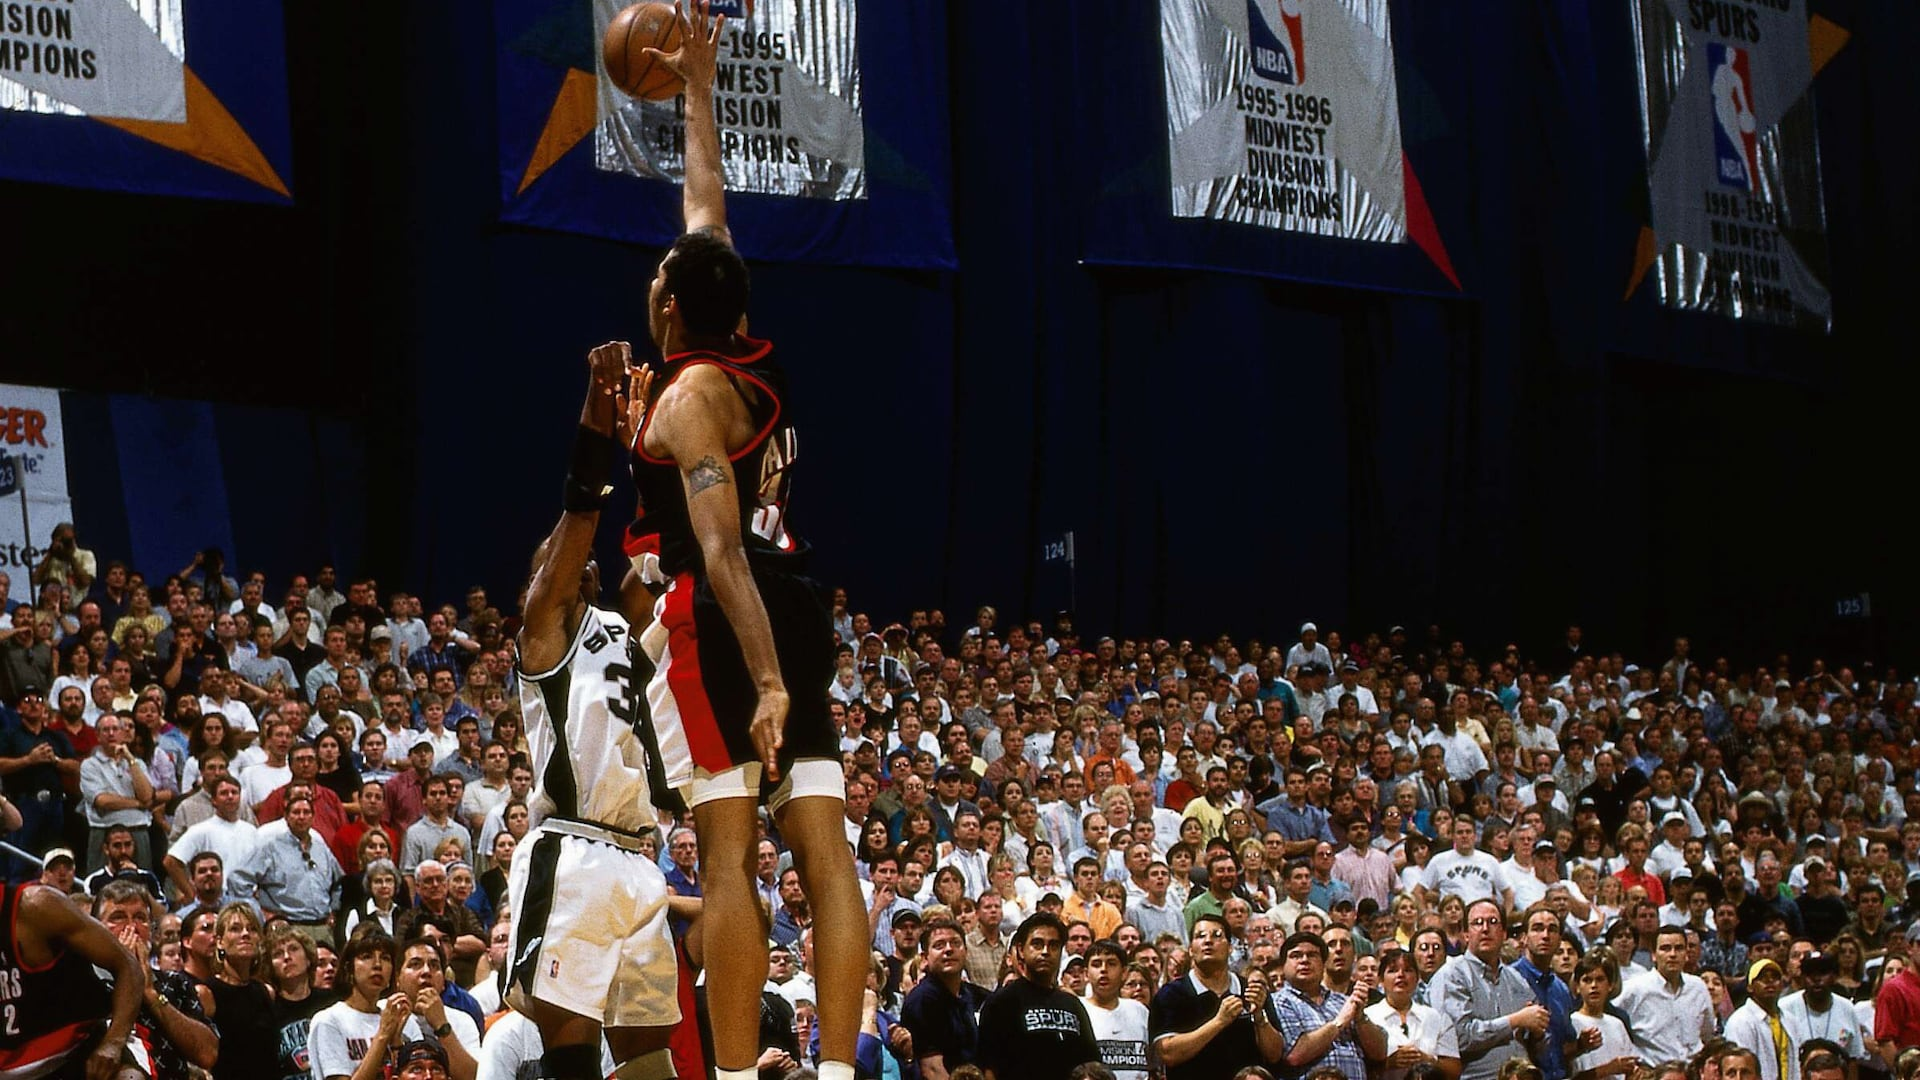 'Memorial Day miracle', Game 6 thrillers and more punctuate NBA TV's lineup